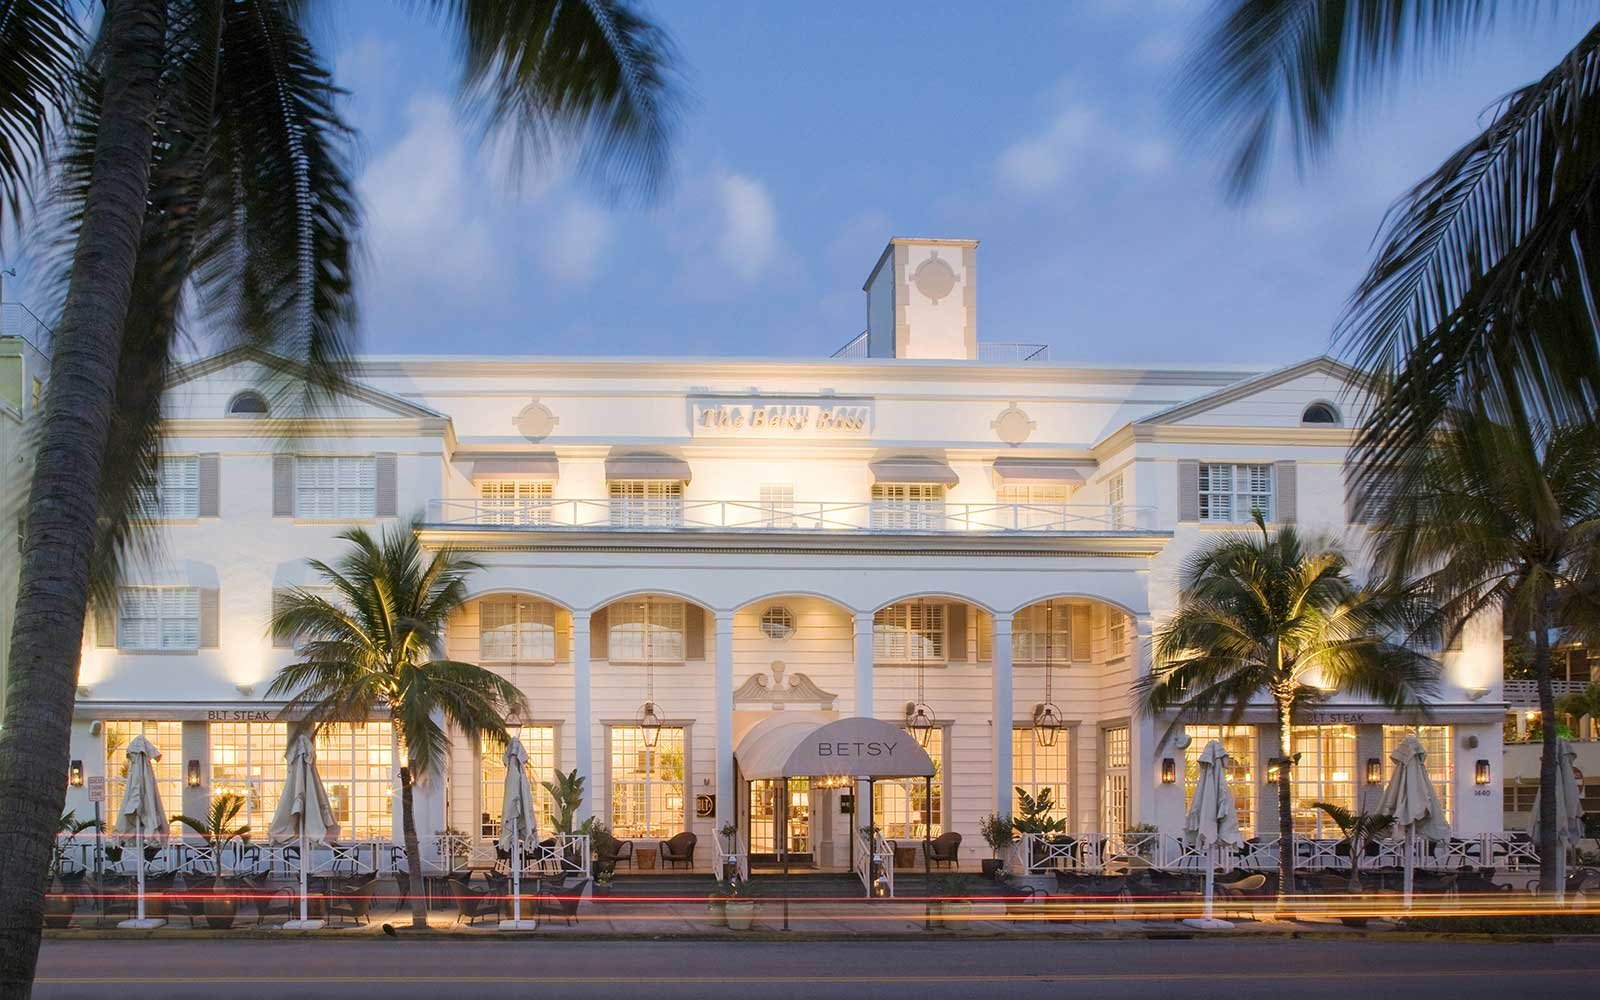 The Betsy Hotel in Florida